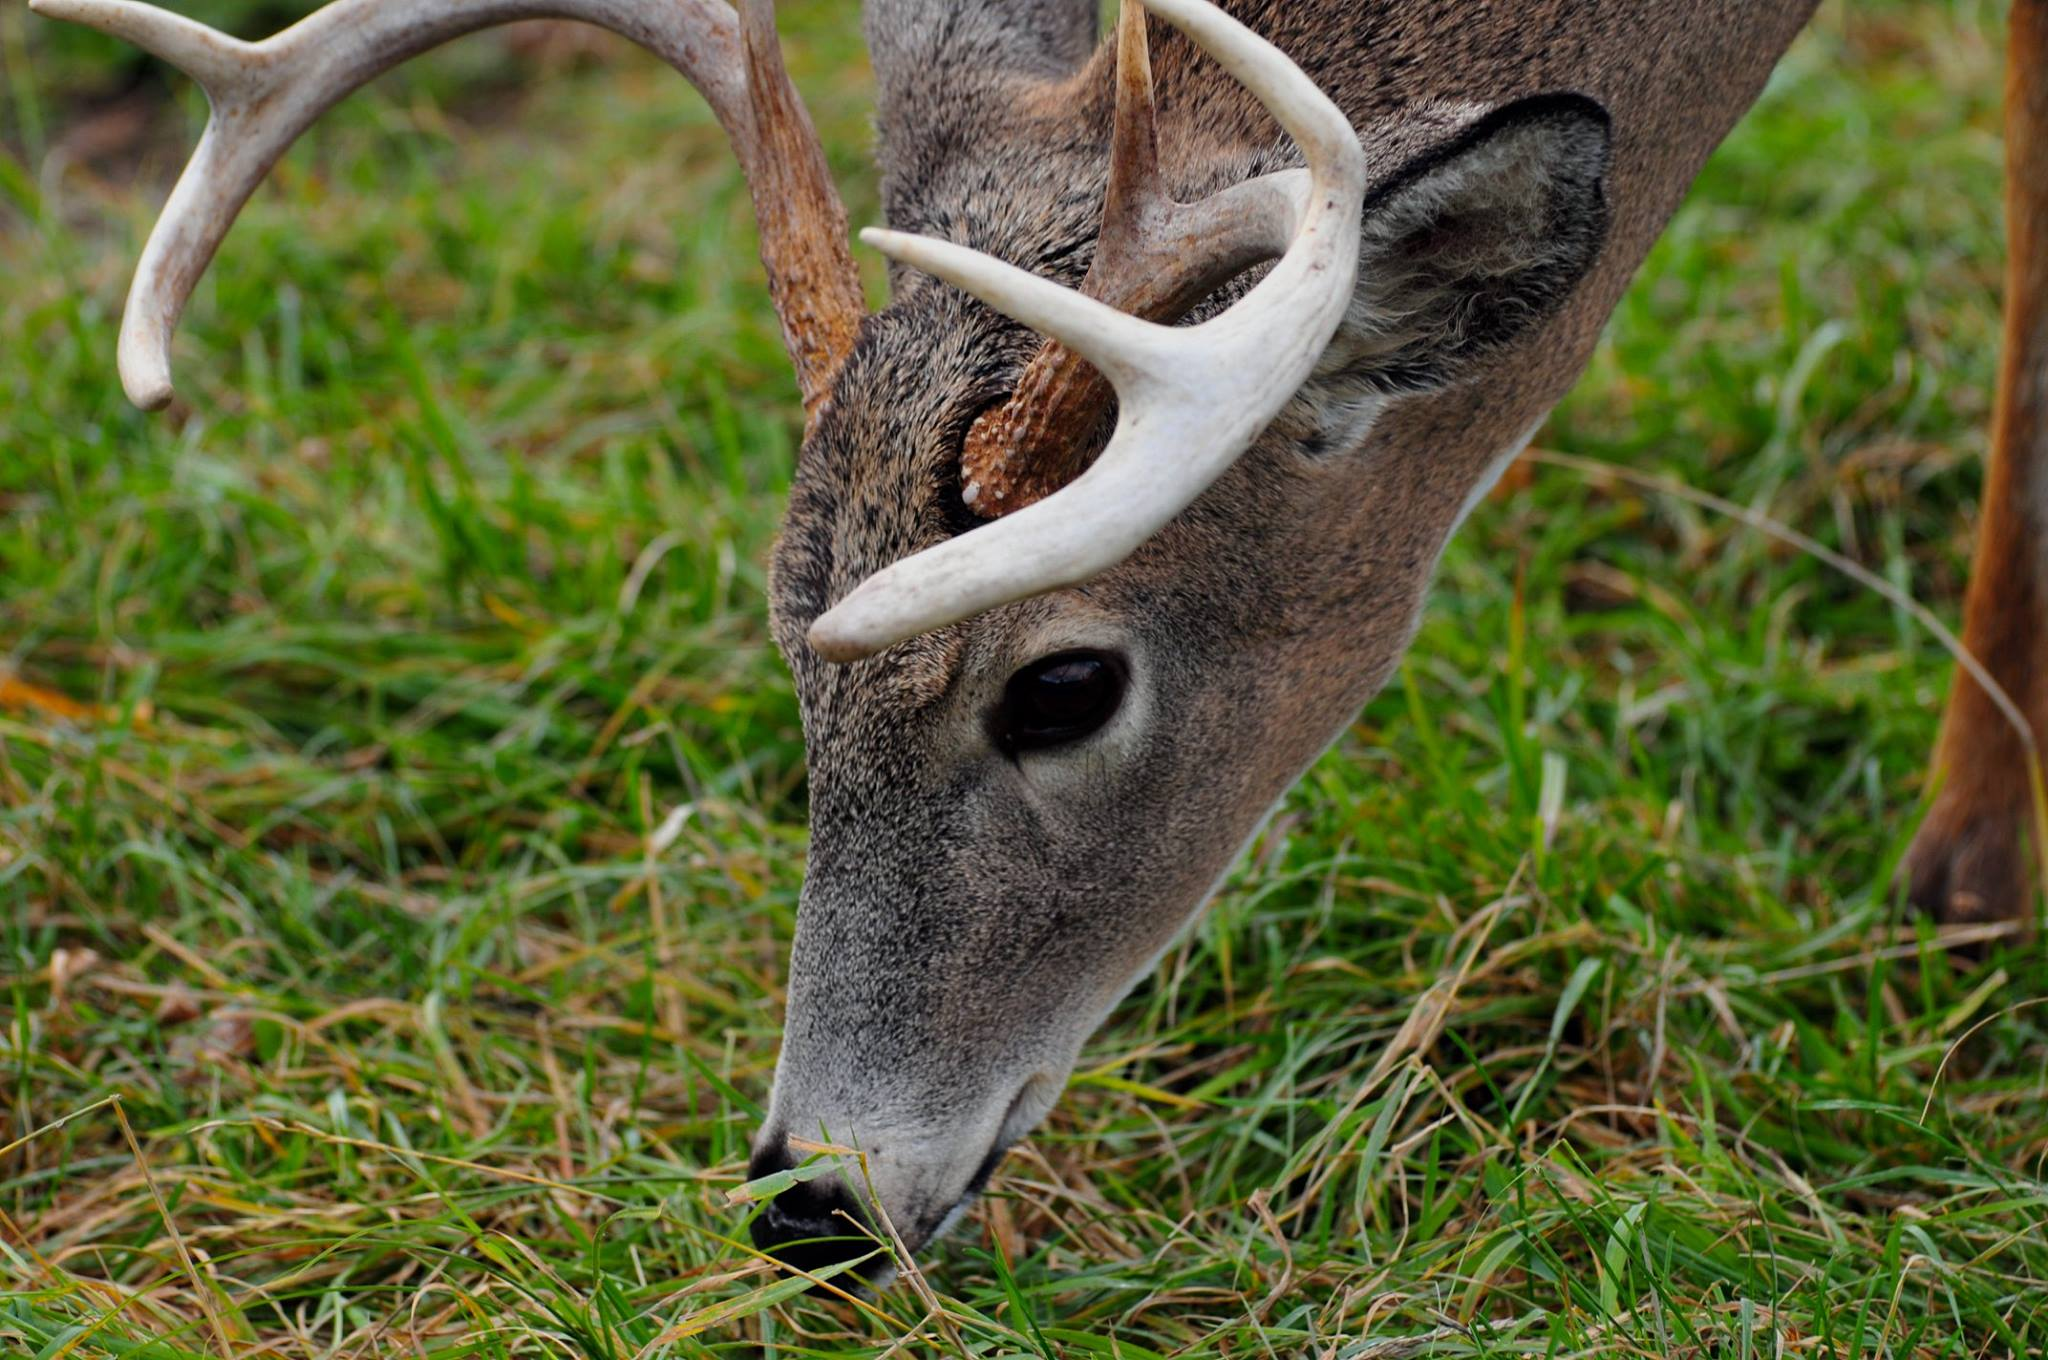 Beautiful Animal Pictures Wallpaper Spotted Deer Eating Grass On Green Grass At Daytime 183 Free